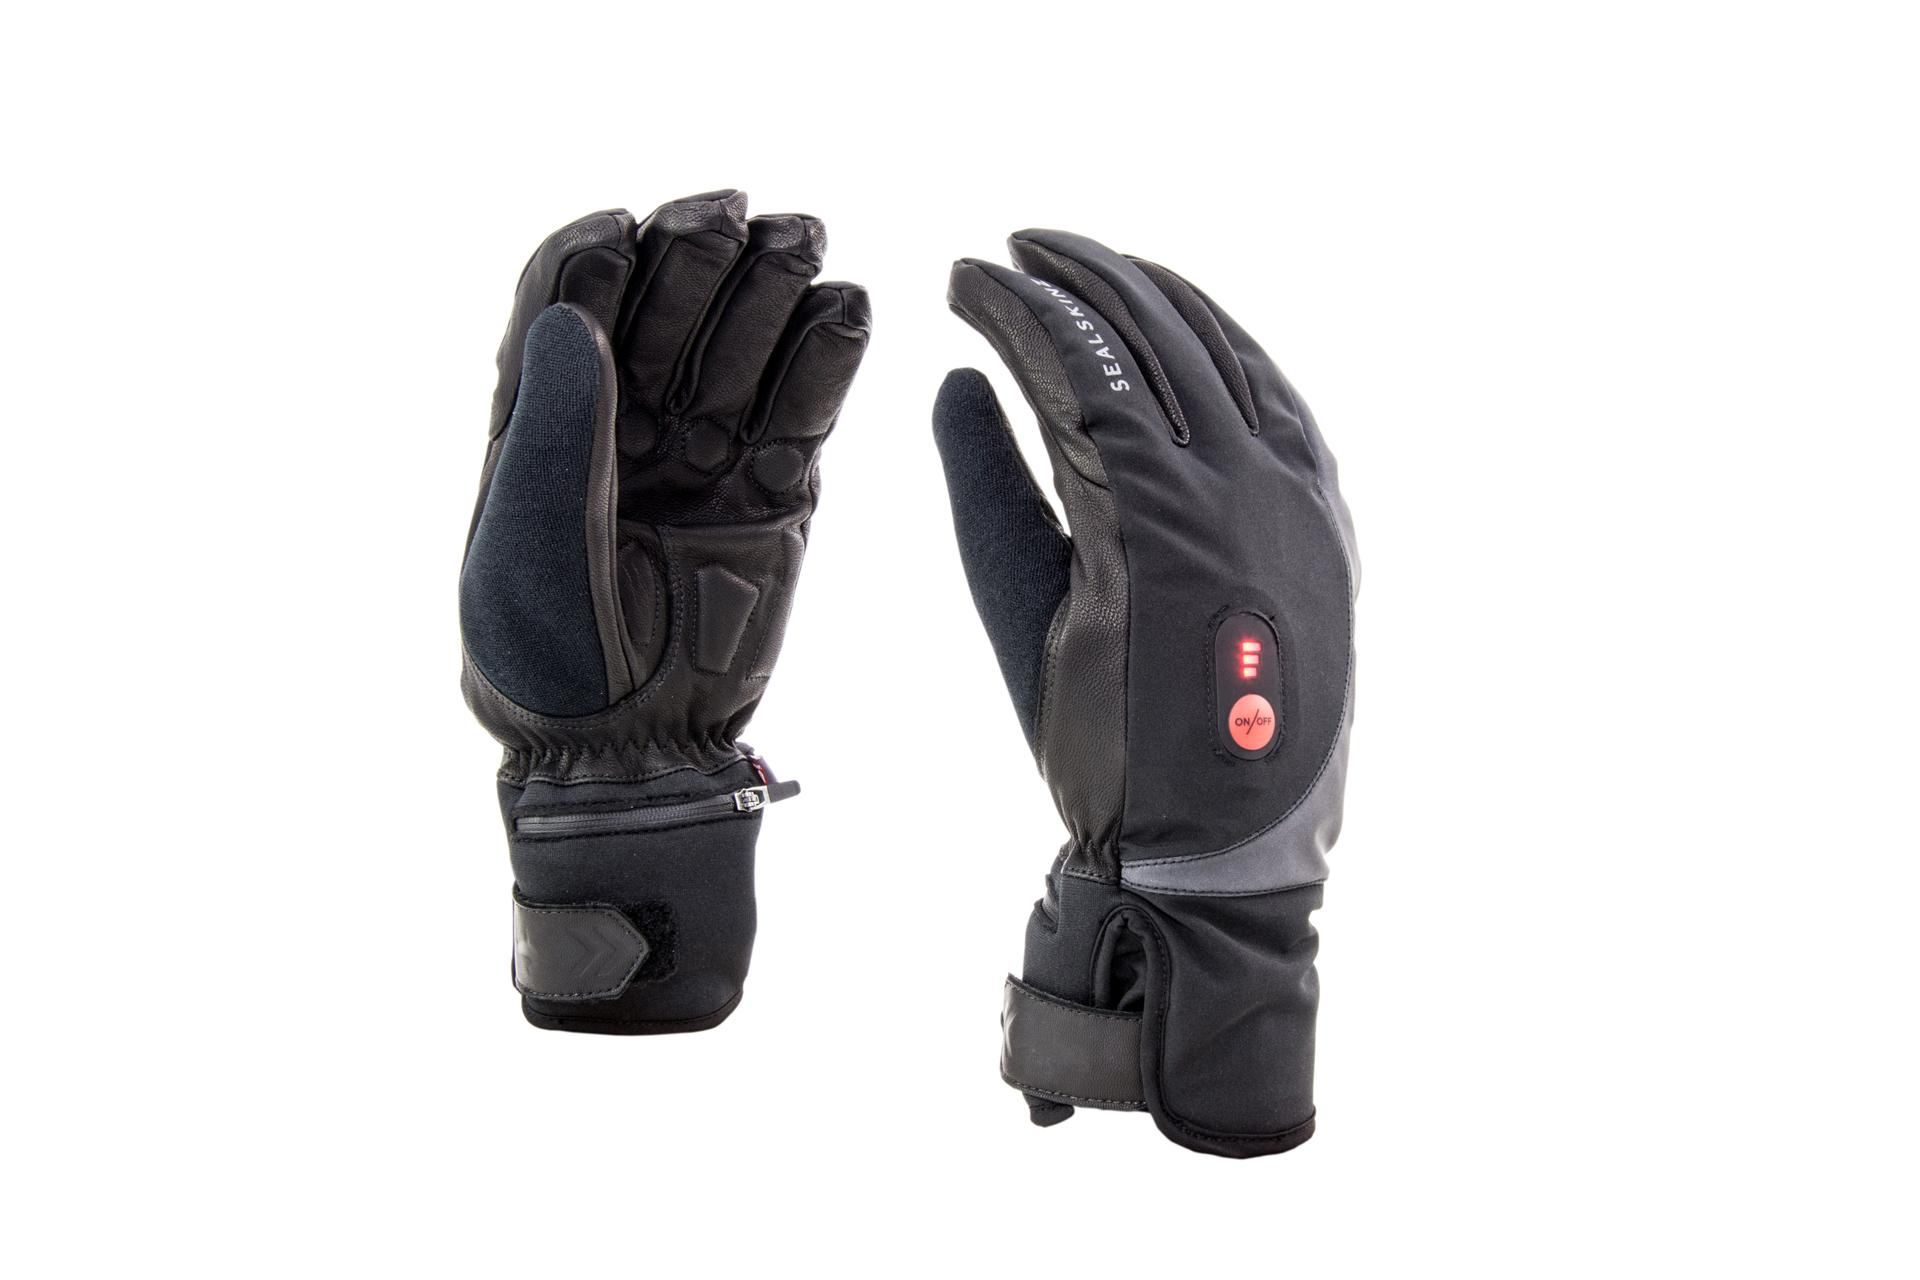 Afbeelding Sealskinz Fietshandschoenen Zwart Rood / SS Cold Weather Heated Cycle Glove-Black/Red